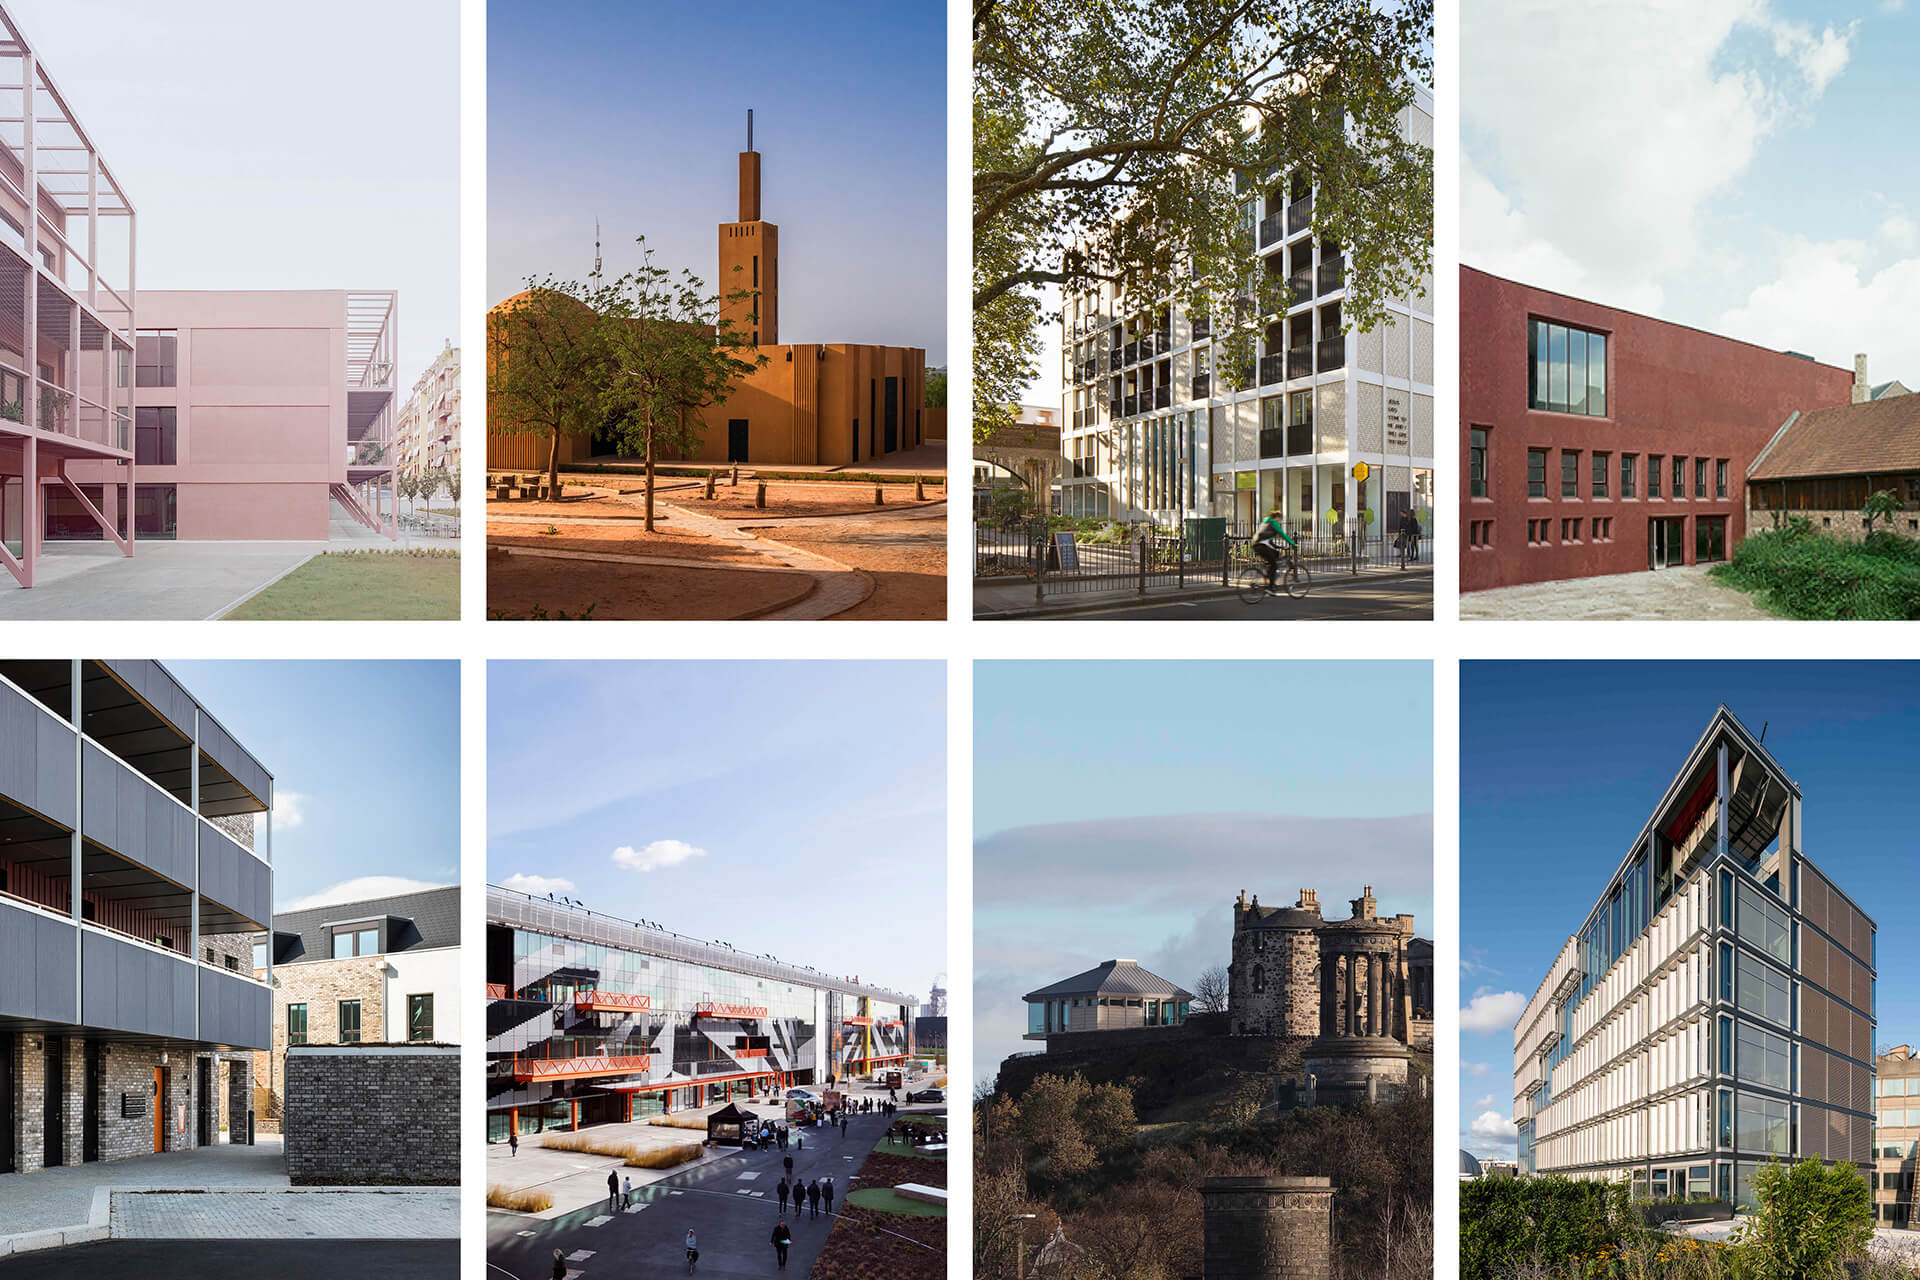 W Awards 2020: (Top row) - Shortlists for Moira Gemmill Prize: Enrico Fermi School, Dandaji Community Centre, Bethnal Green Mission Church and Z33 Museum. (Bottom row) – Shortlists for MJ Long Prize: Marmalade Lane, Here East, Calton Hill City Observatory and Centre Building at the LSE | The Architectural Review | W Awards 2020 | STIRworld